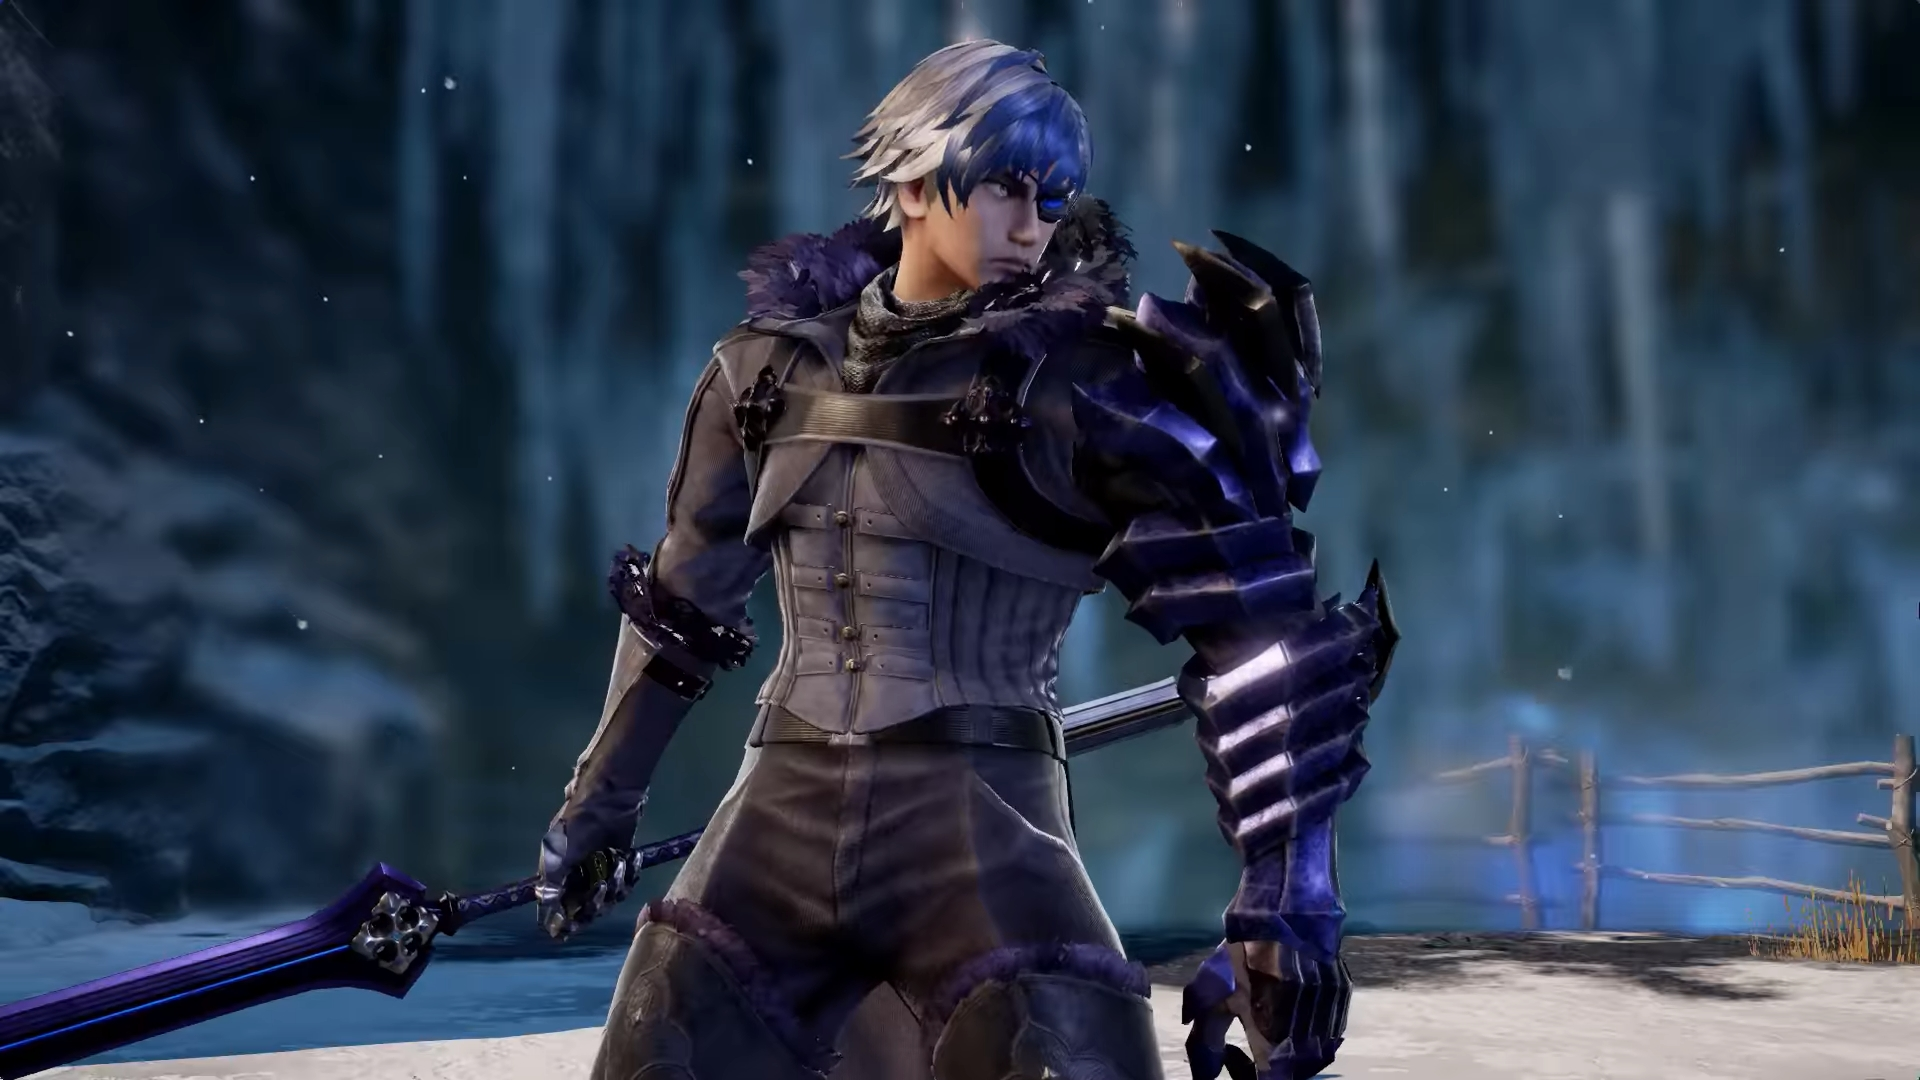 New Soulcalibur 6 Trailer Introduces Groh The Return Of